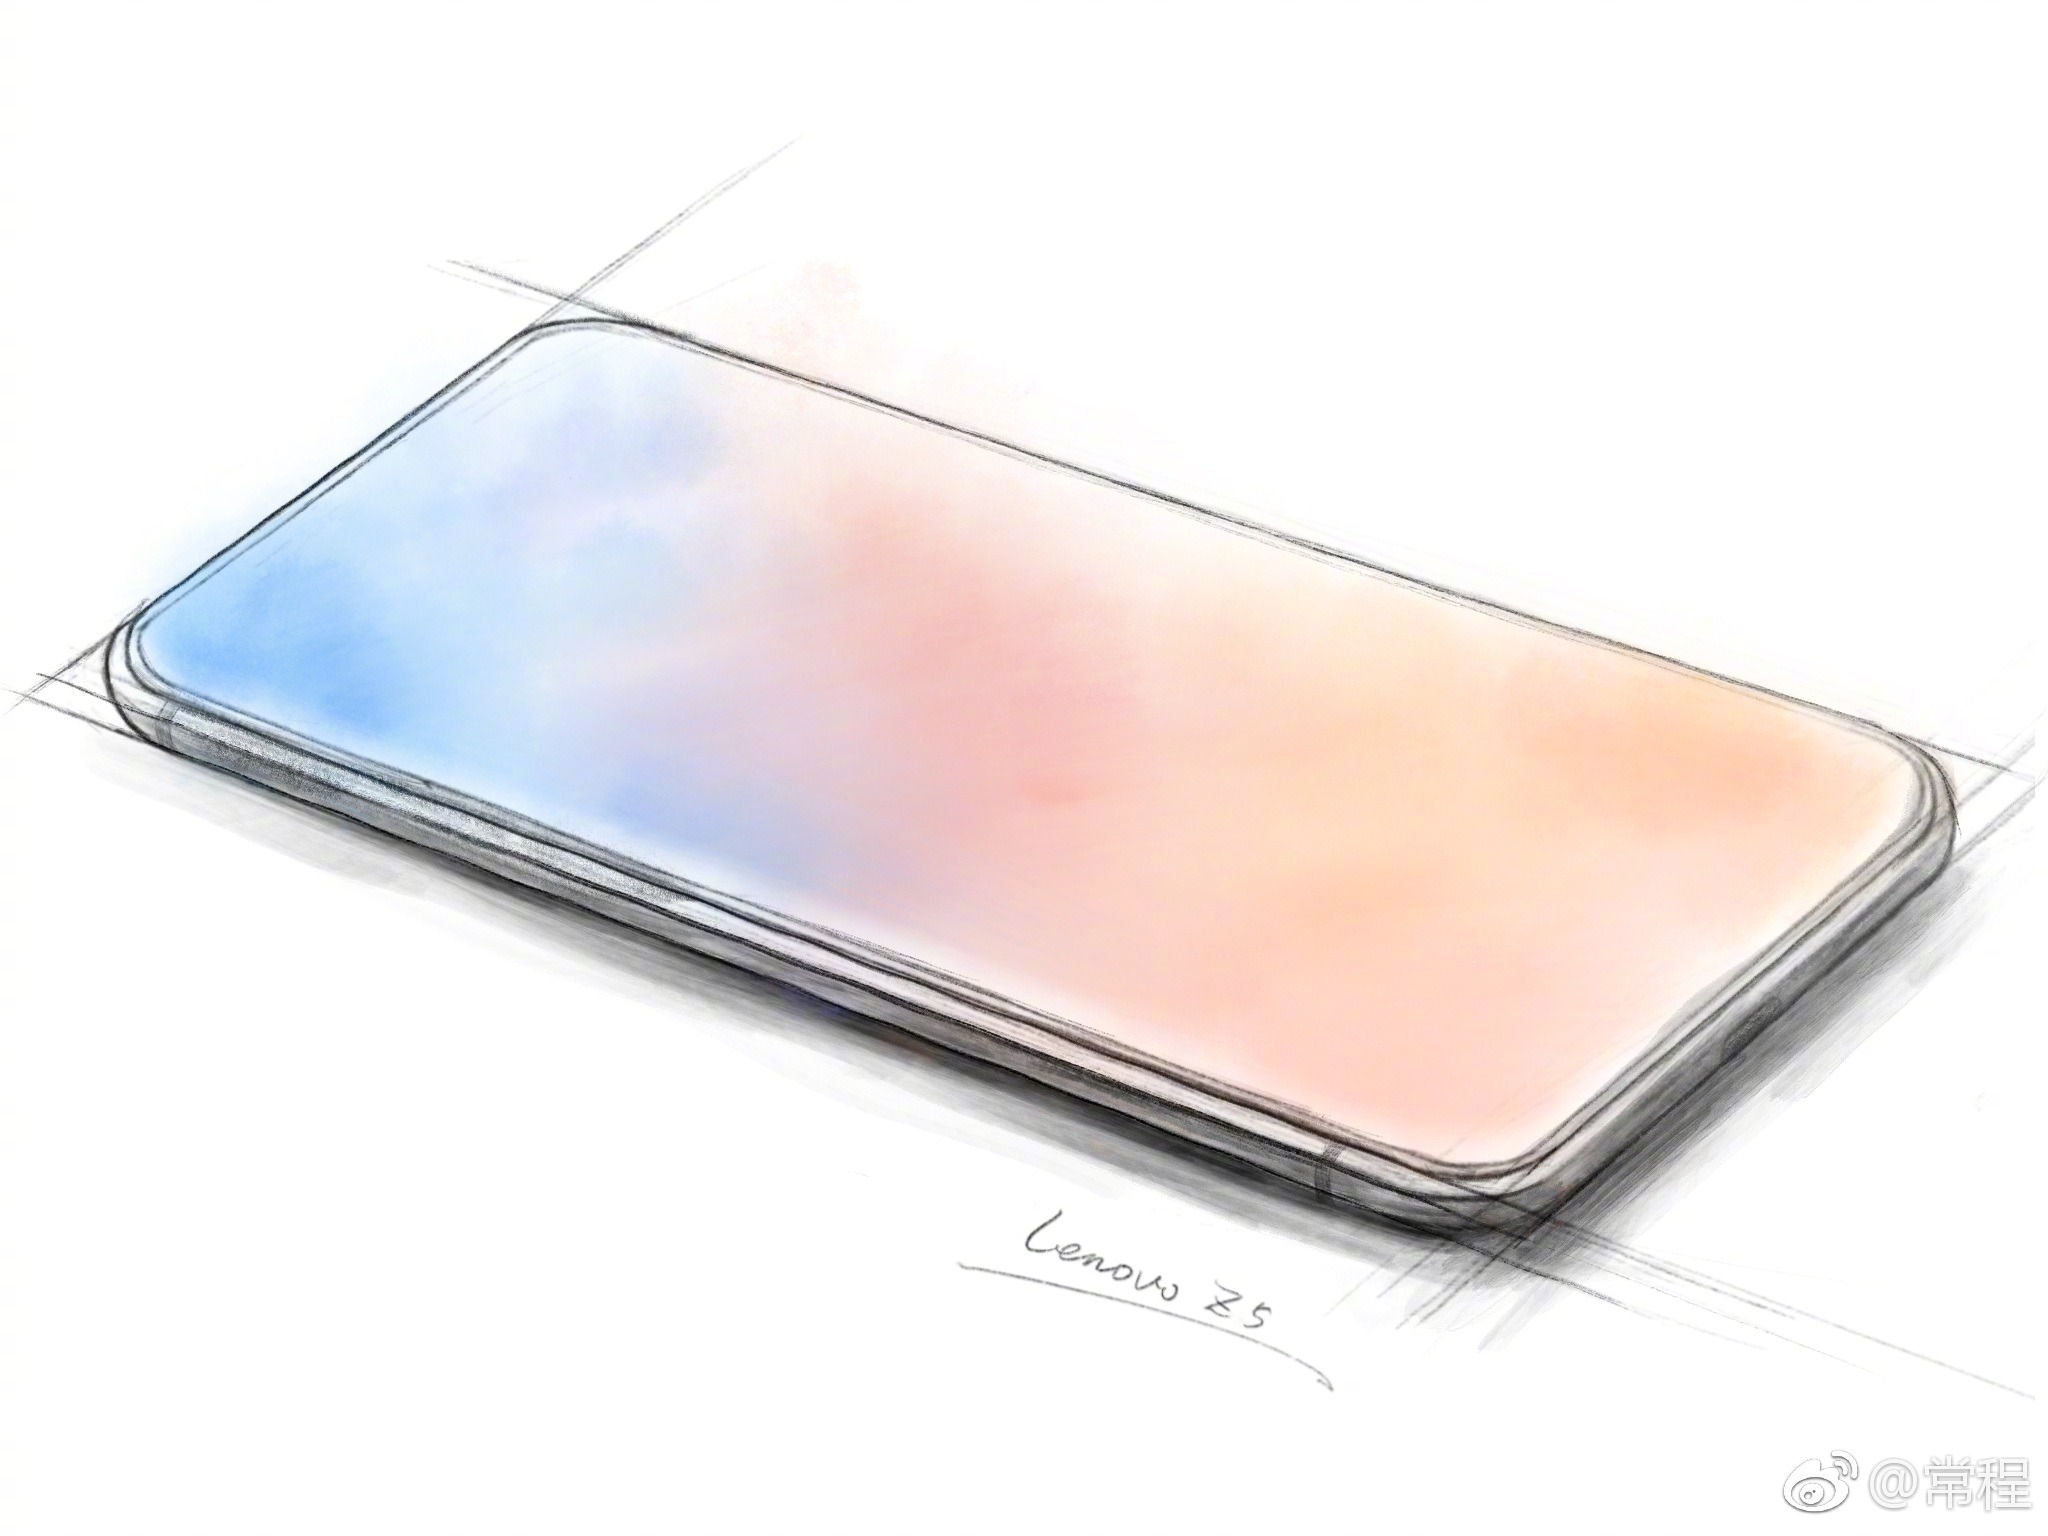 Lenovo Z5 is officially launching on June 5 3